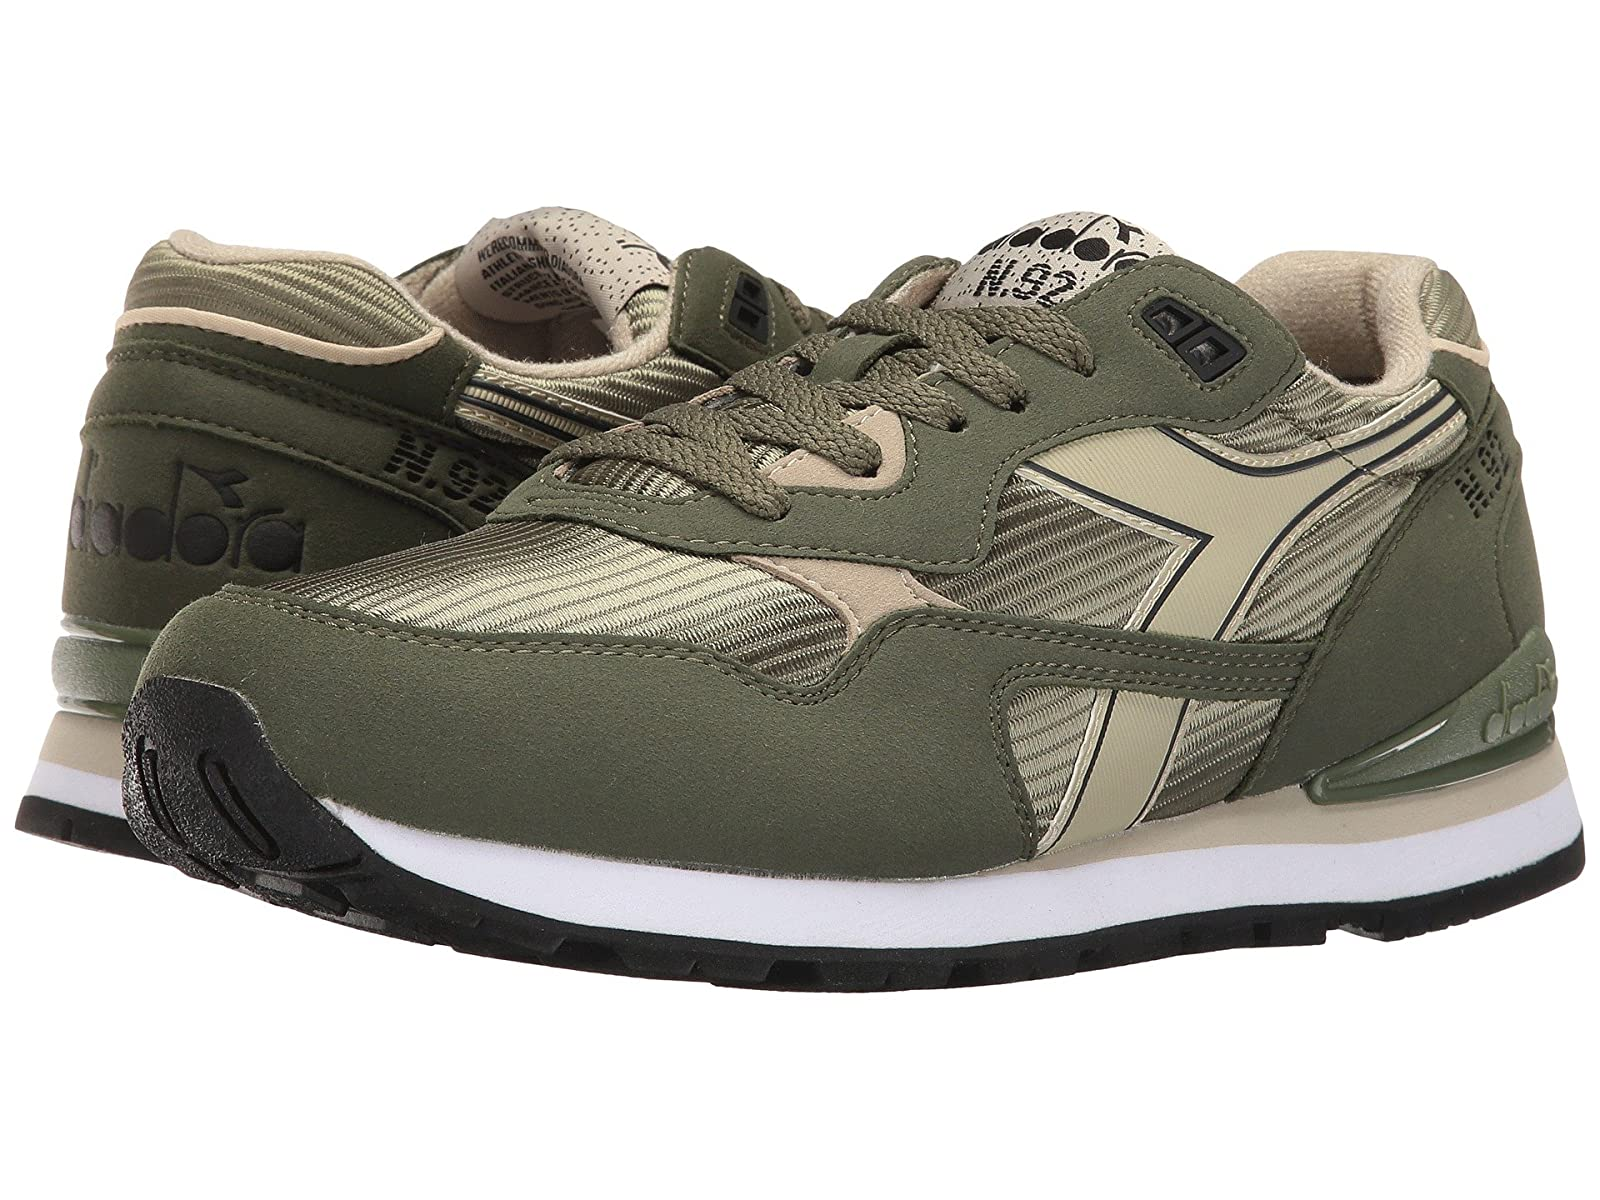 Diadora N-92Cheap and distinctive eye-catching shoes